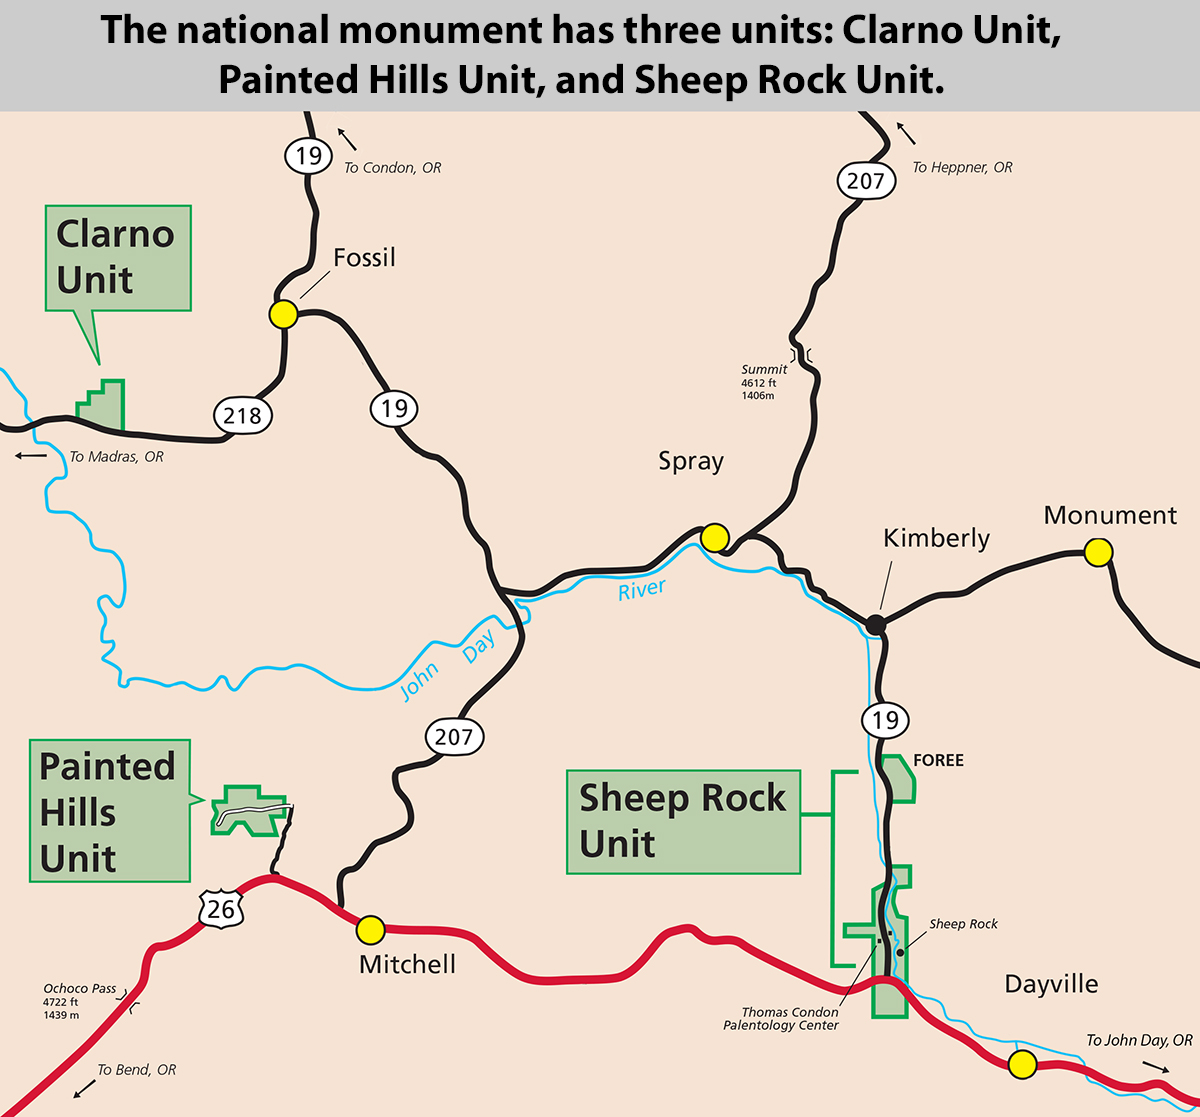 The national monument has three units, the Clarno Unit, the Painted Hills Unit, and the Sheep Rock Unit.